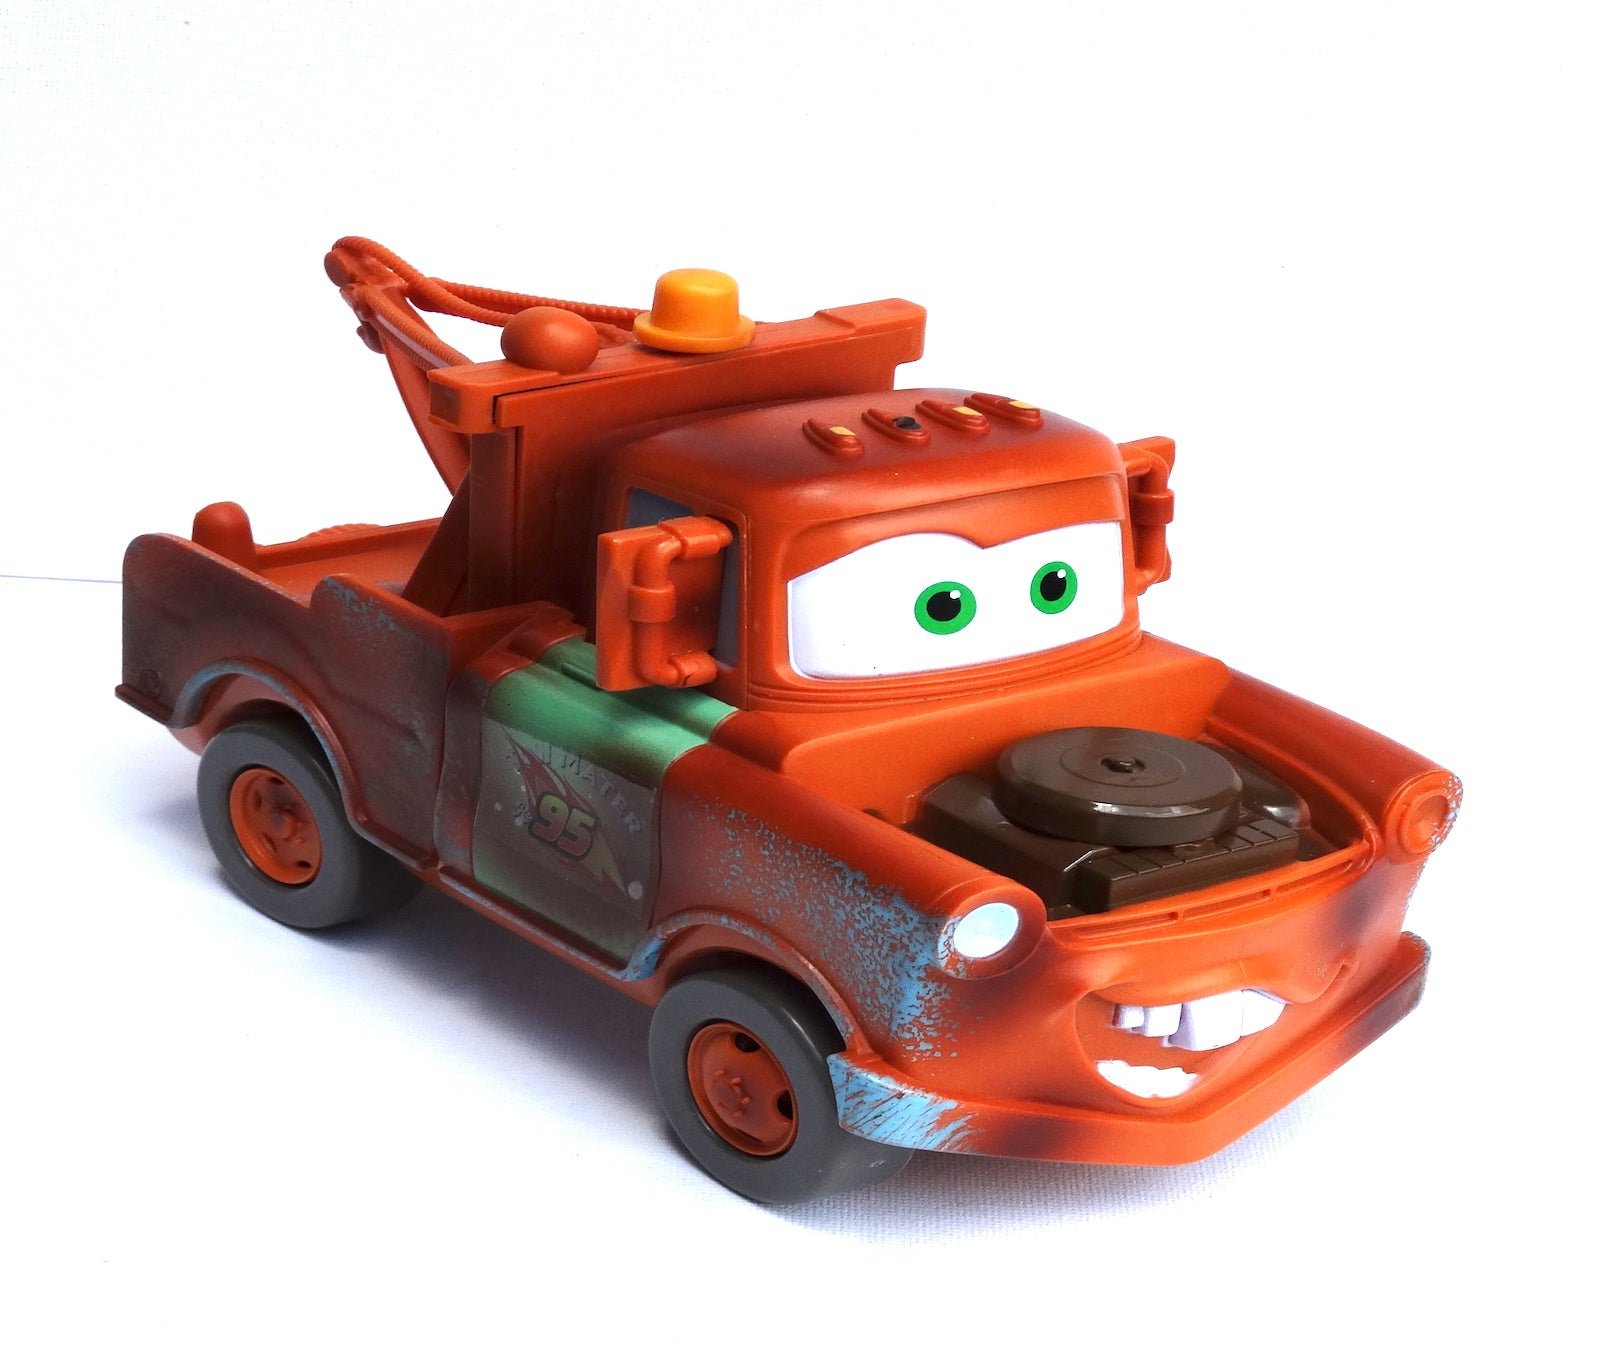 Cars Mater - 3D Mini Figurines - Bubble Bath - 300ml